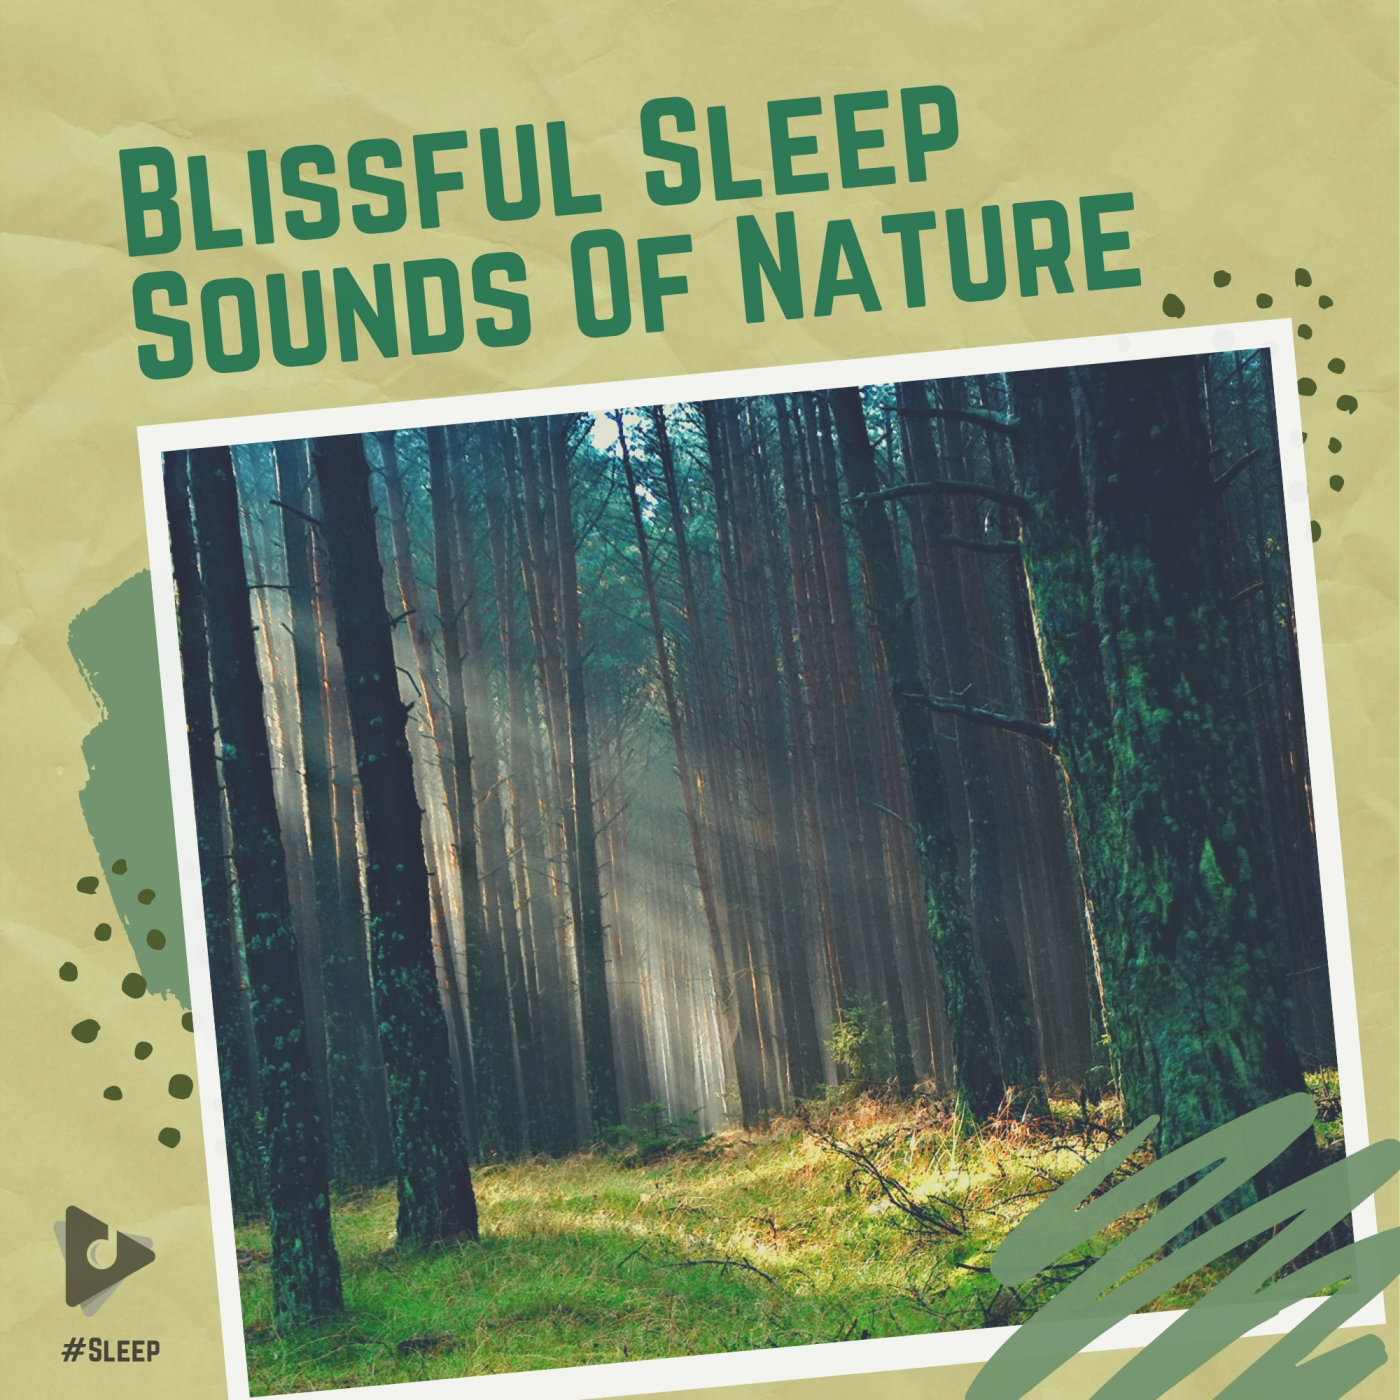 Blissful Sleep Sounds of Nature